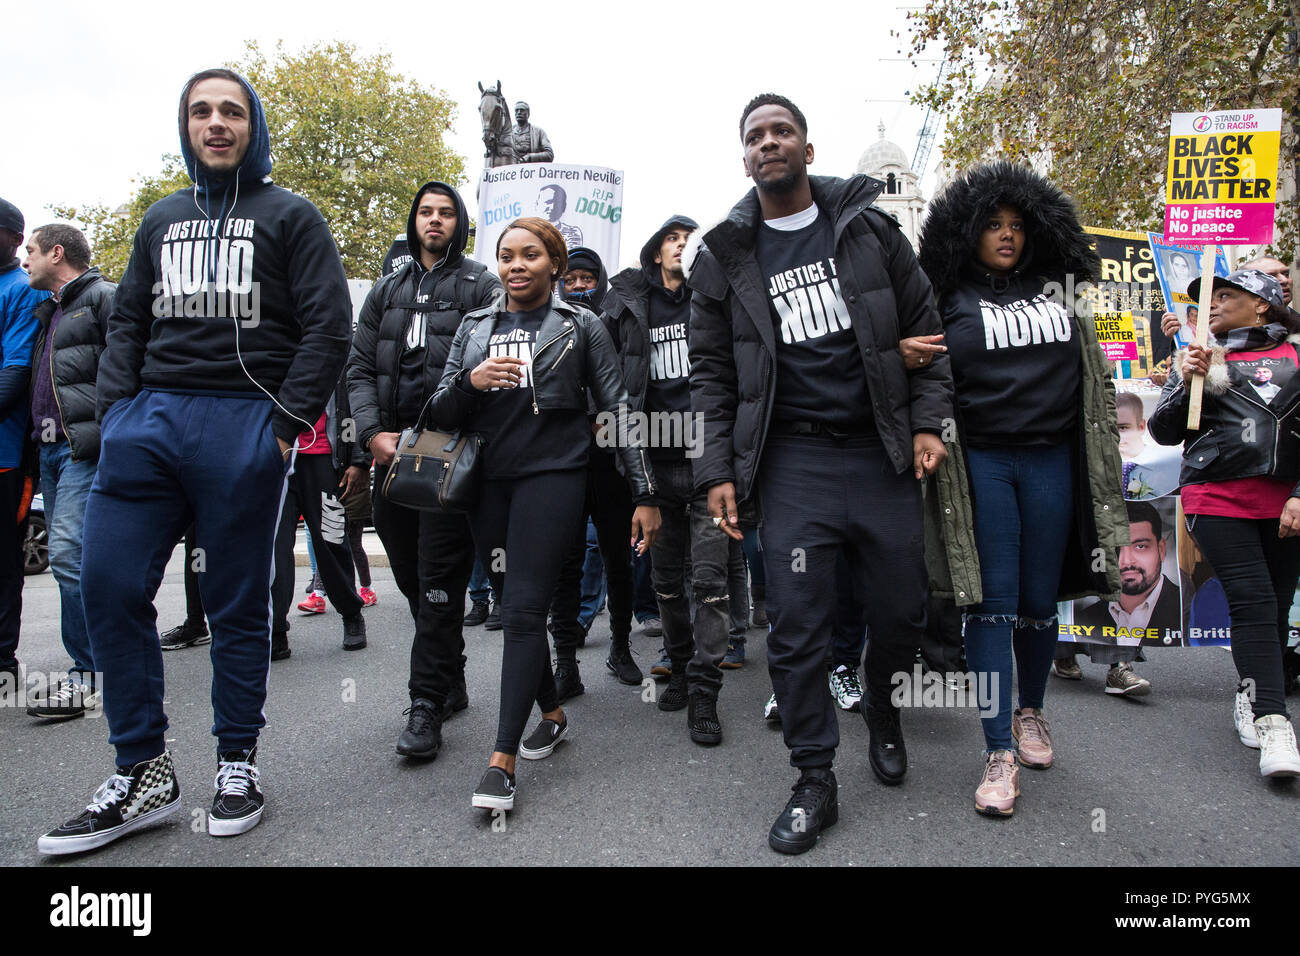 London, UK. 27th October, 2018. Supporters of the Justice for Nuno Cardoso campaign join campaigners from the United Families and Friends Campaign (UFFC) taking part in the 20th annual procession to Downing Street in remembrance of family members and friends who died in police custody, prison, immigration detention or secure psychiatric hospitals. Credit: Mark Kerrison/Alamy Live News - Stock Image